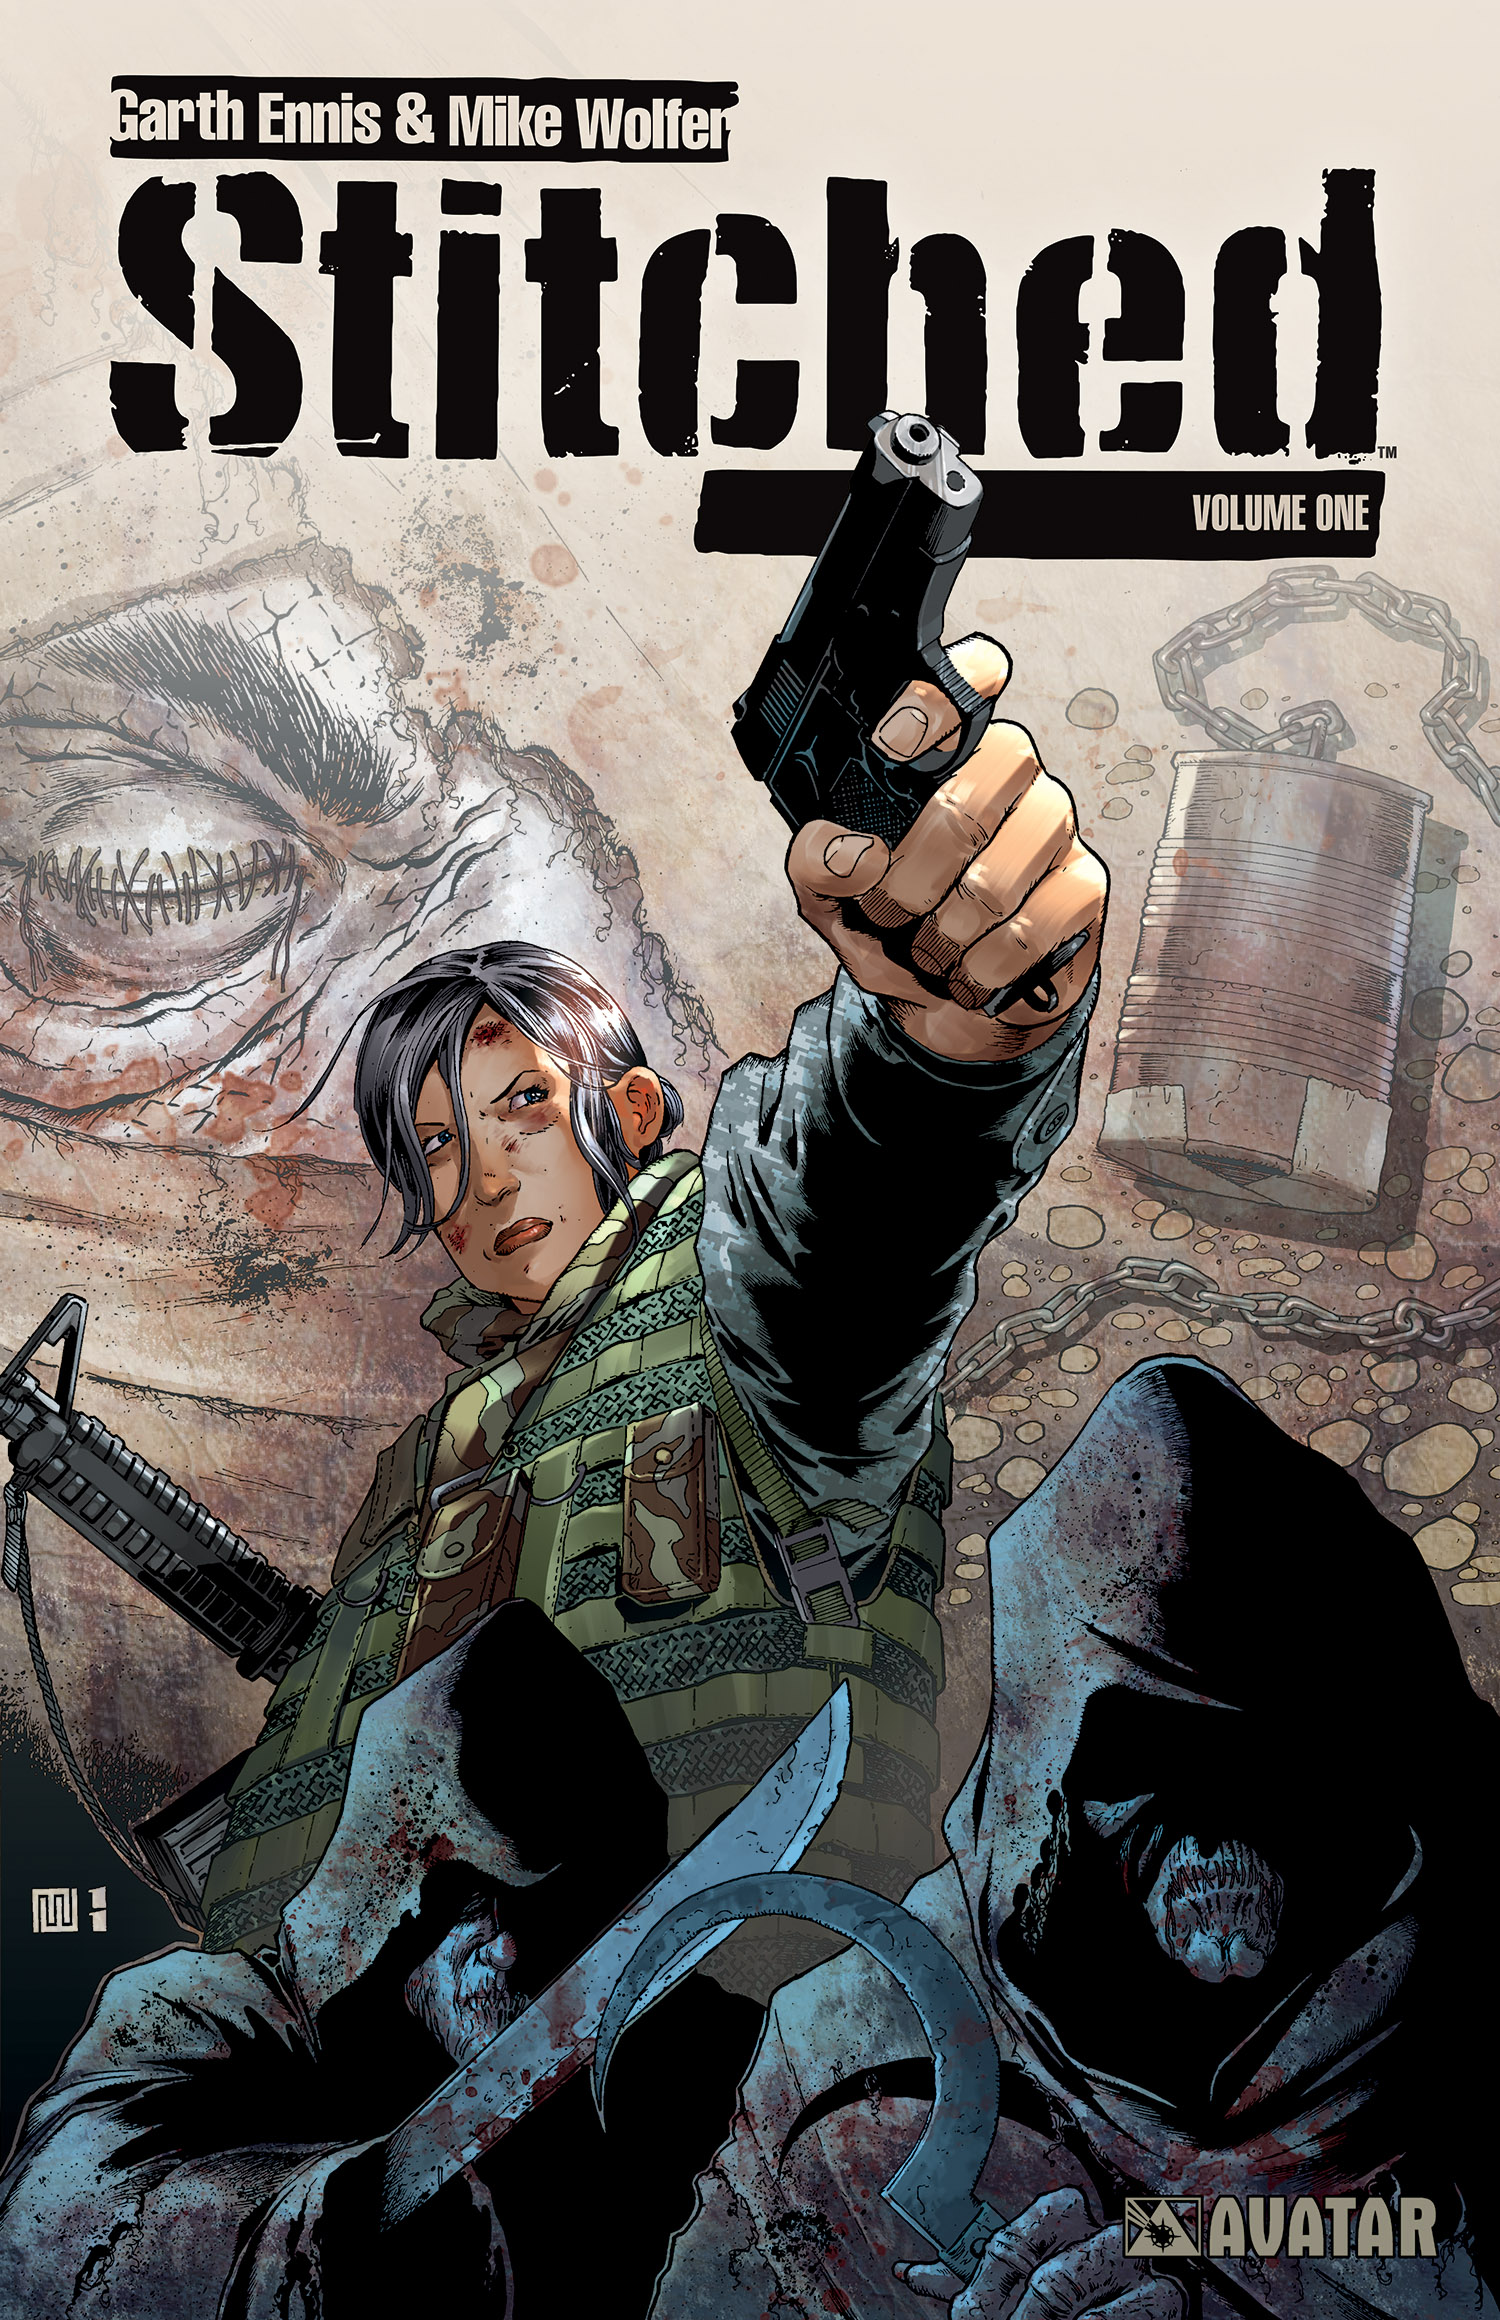 Stitched volume 1 by Garth Ennis and Mike Wolfer from Avatar Press